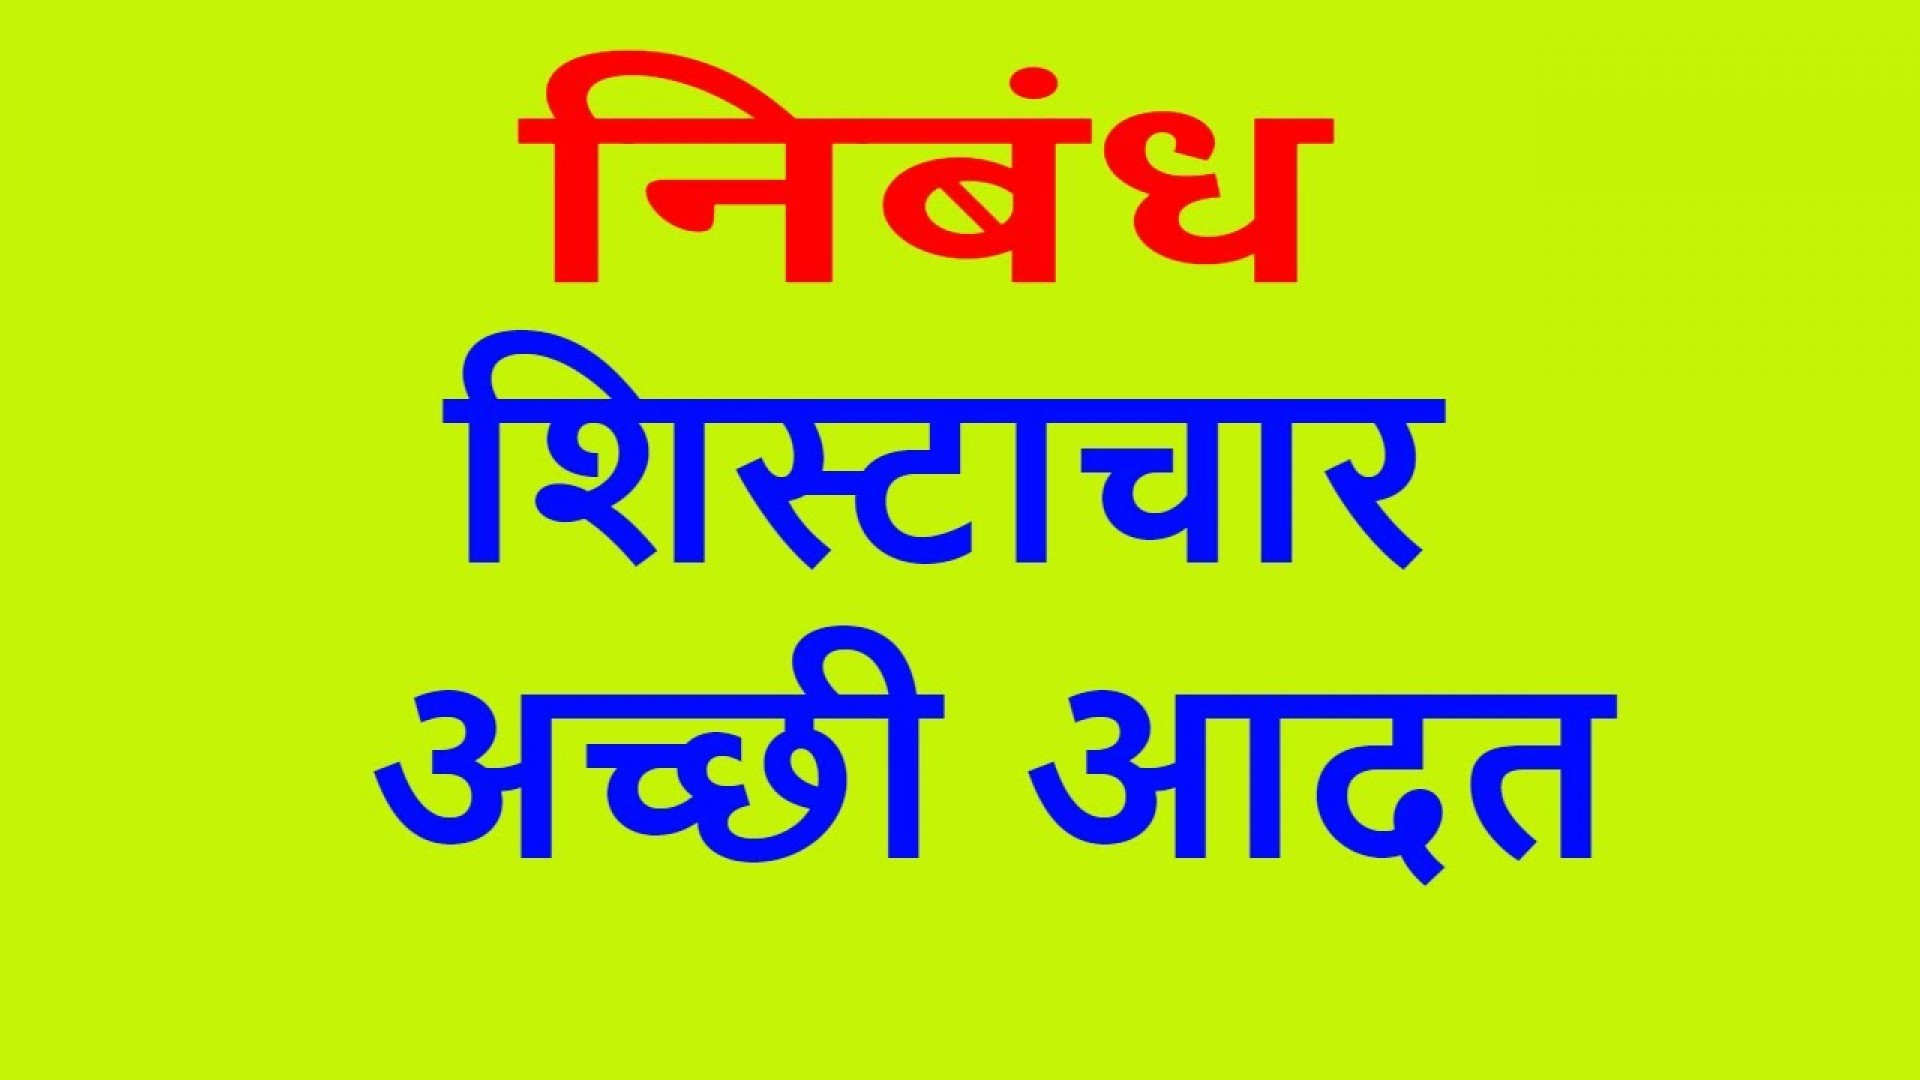 017 Maxresdefault Essay Example Good Habits In Exceptional Hindi Healthy Eating Reading Is A Habit 1920